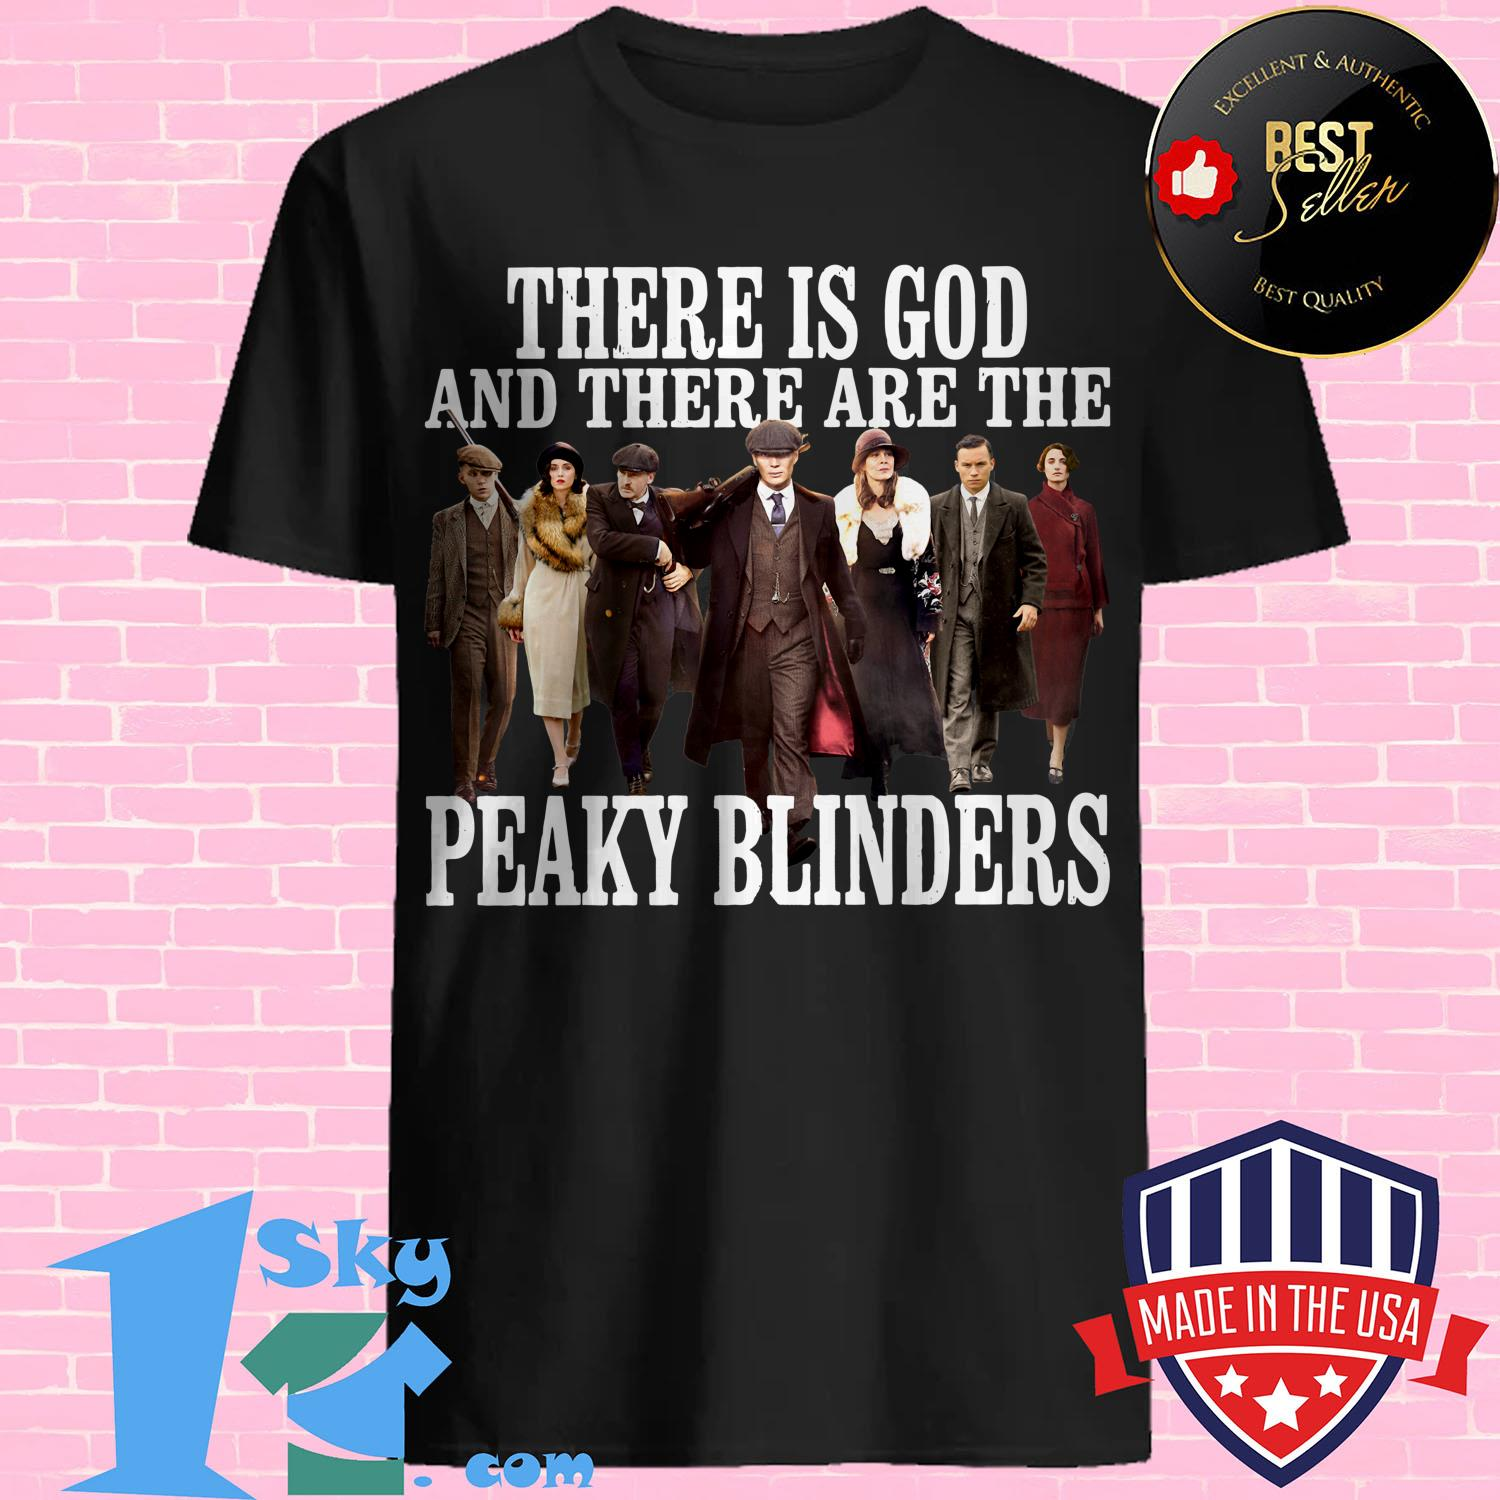 there is god and there are the peaky blinders shirt - There is God and There are The Peaky Blinders shirt